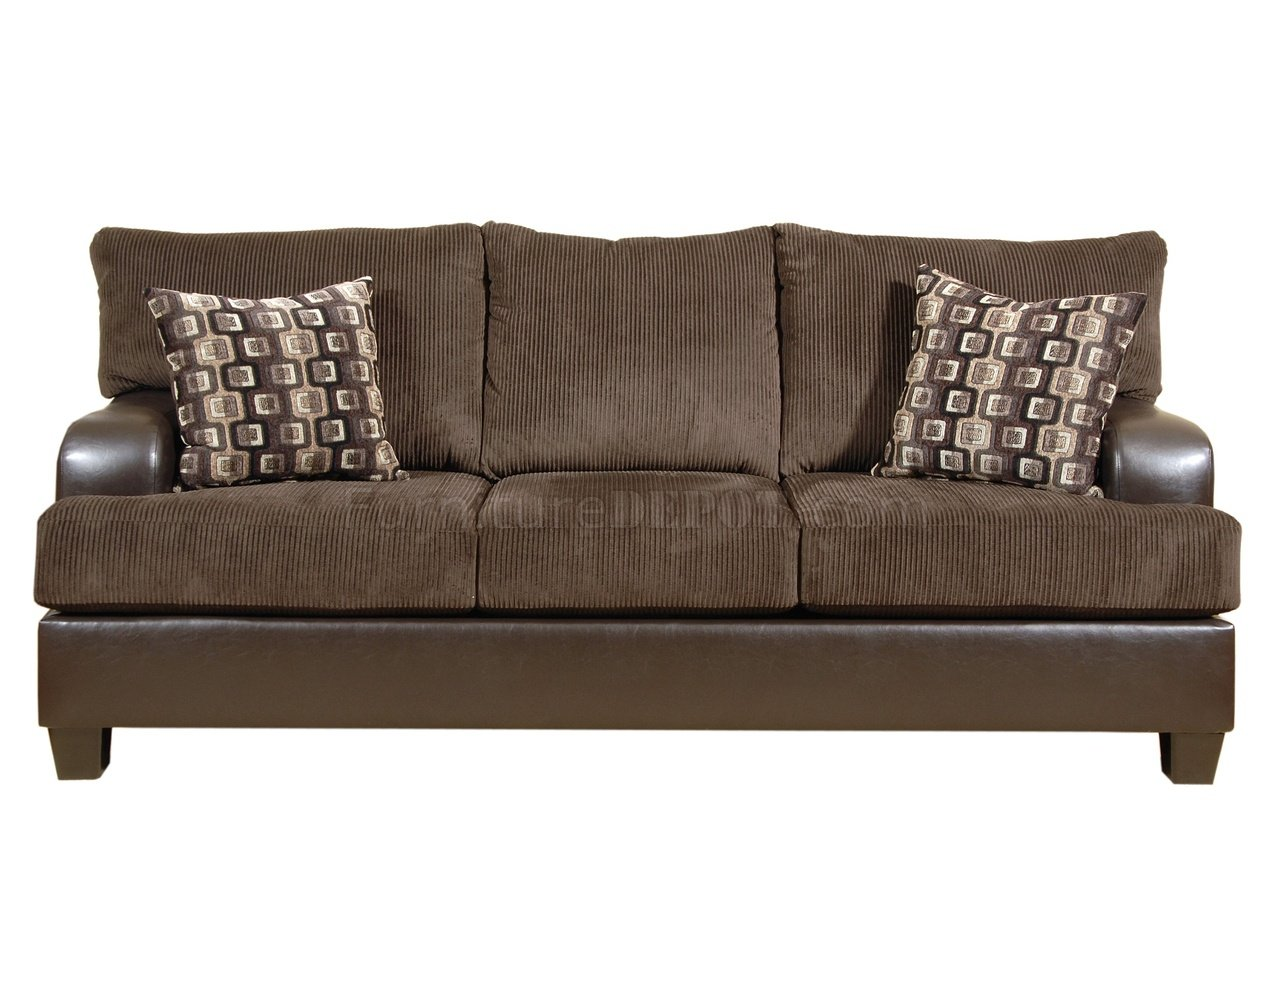 Chocolate microfiber sofa loveseat w optional ottoman chair Brown microfiber couch and loveseat